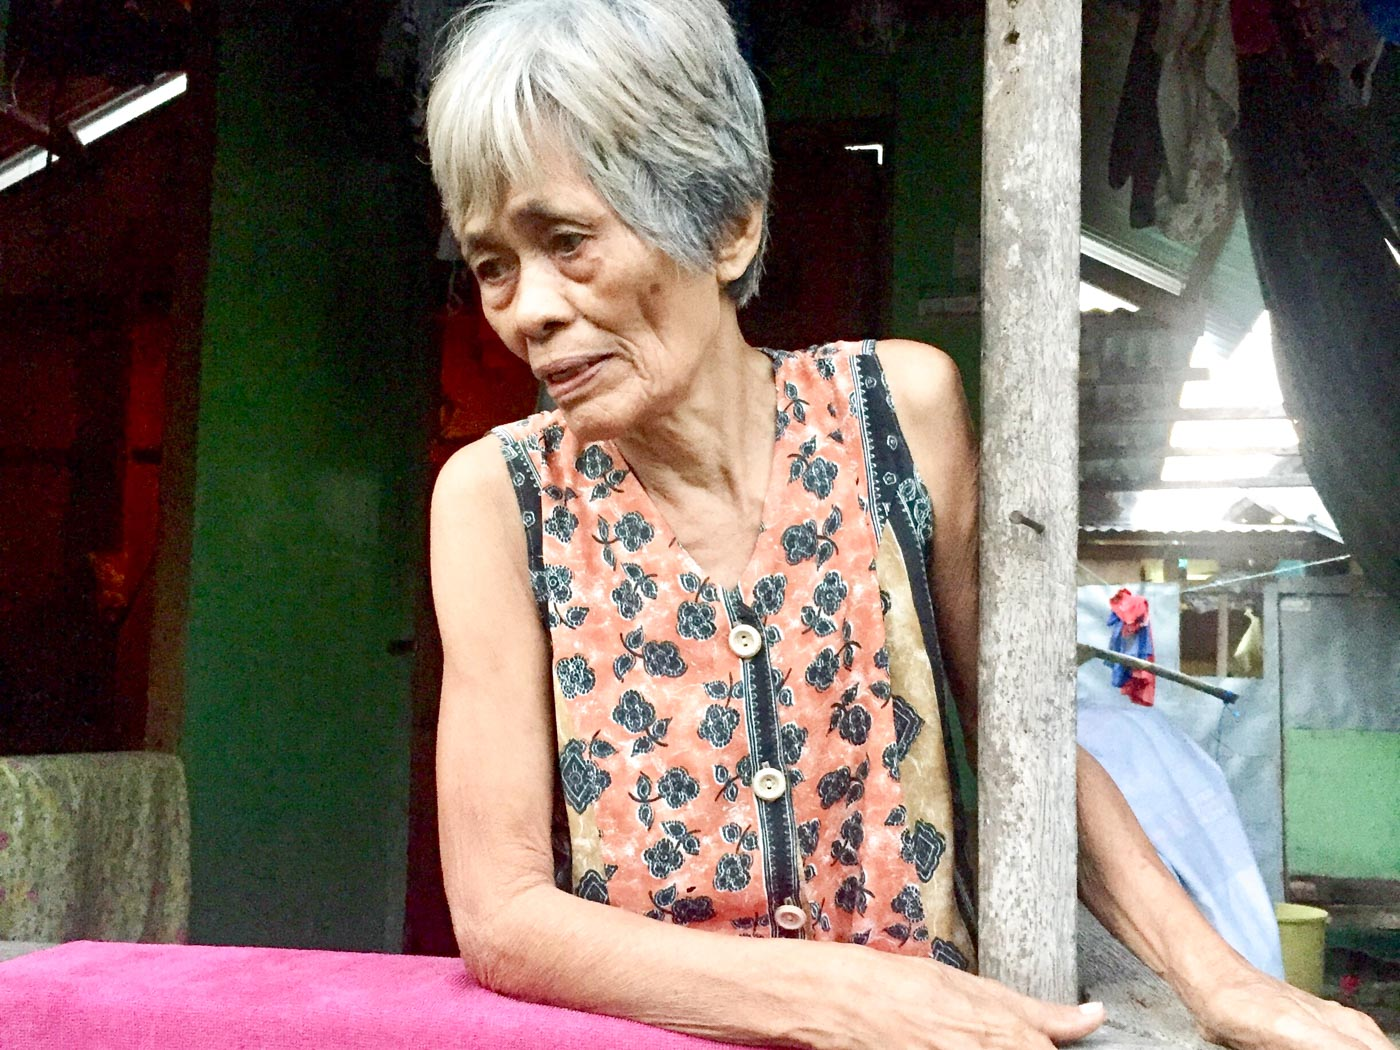 NOT FORGOTTEN. Four years since Super Typhoon Yolanda hit her hometown, Priscilla Mia, 73, remembers her daughter and her grandchild who died when a storm surge submerged their house in Tacloban. Photo by Ailene Liporada